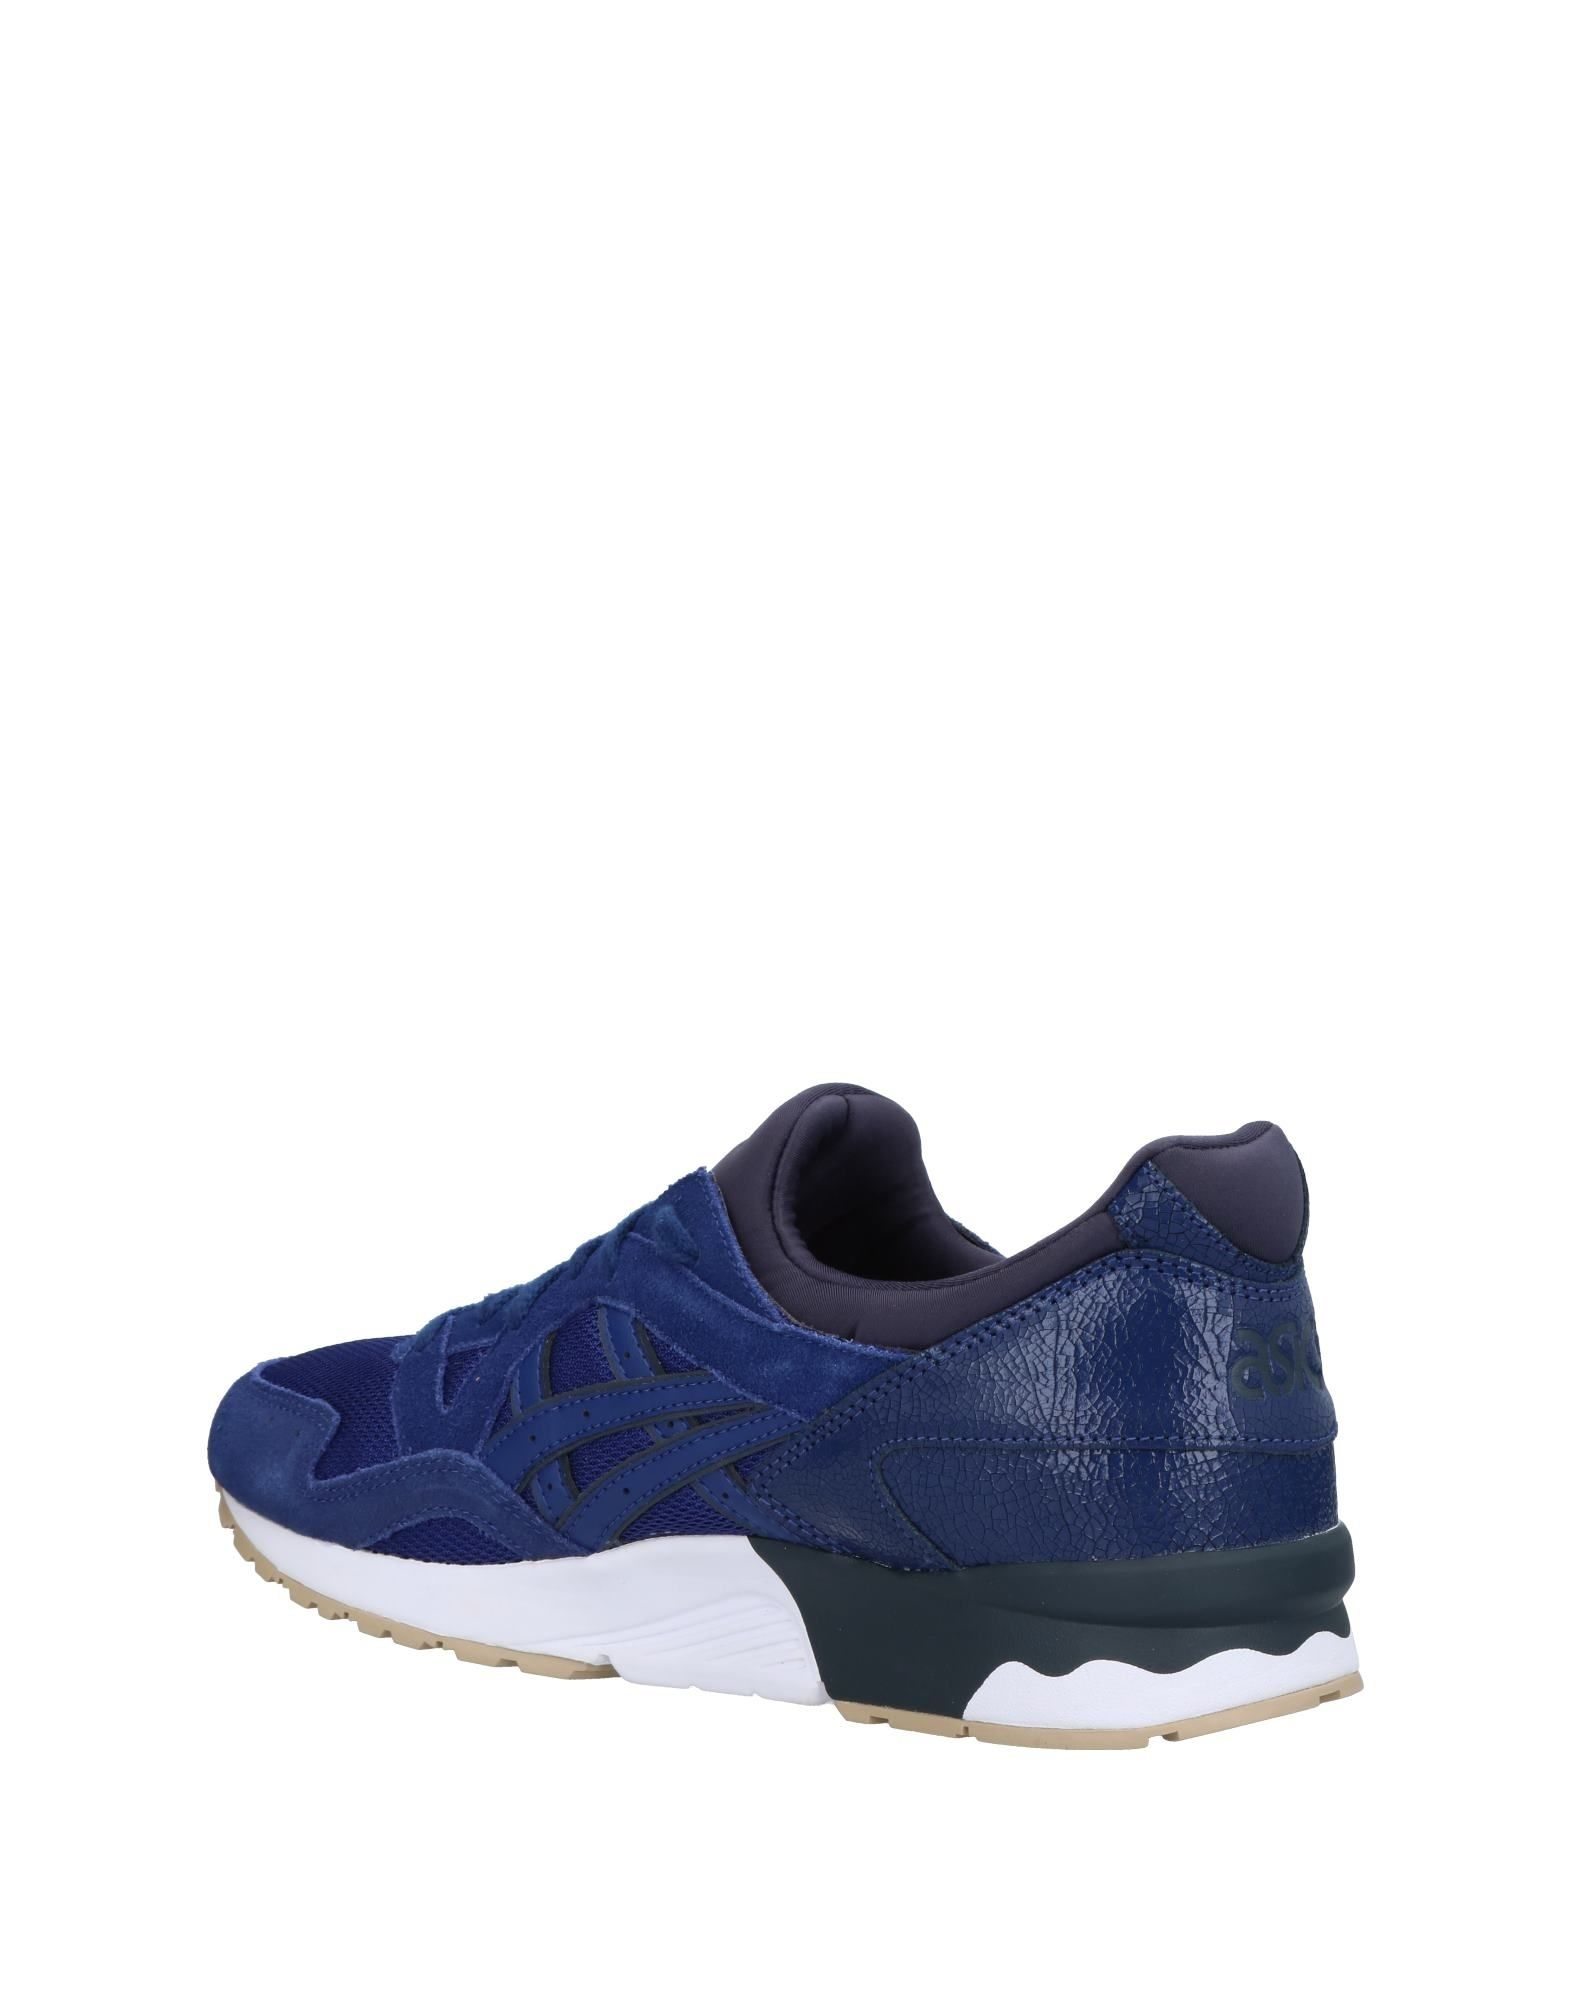 Sneakers Asics Homme - Sneakers Asics sur